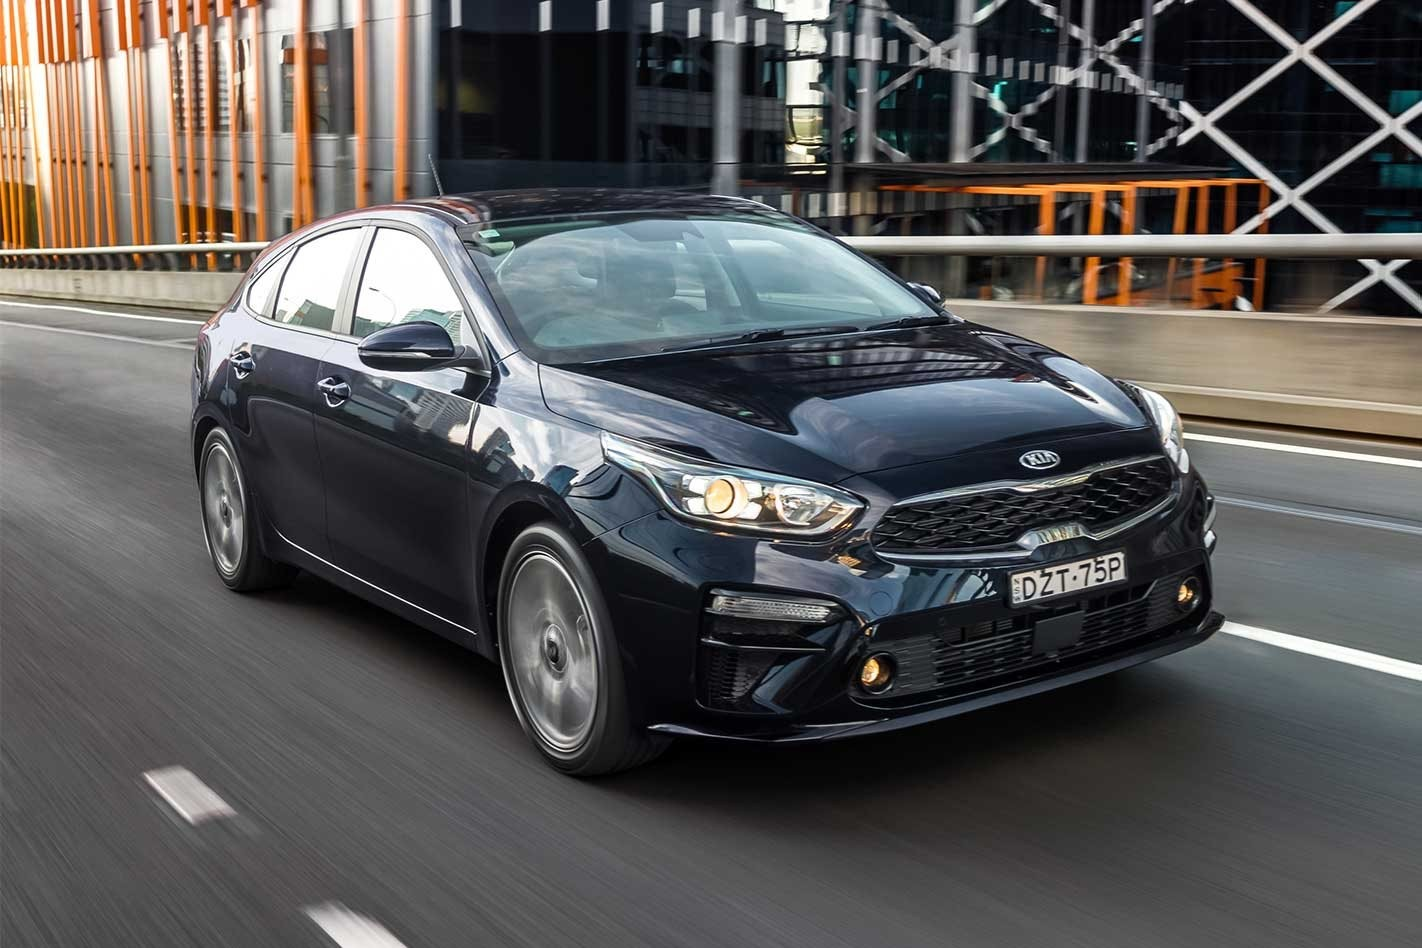 Kia Motors is all set to launch its latest and the most hyped Cerato in Pakistan, according to the recent famous reports. If these reports by local automotive journalists are to be believed, then the vehicle will be in the showrooms by the end of this year. How Does Kia Cerato Look Like? Kia Cerato is a midsize family Sedan. It is likely to compete against the current popular in the Pakistani market including Toyota Corolla, Honda Civic, and Hyundai Elantra. It is the fourth generation in the Cerato series, otherwise known as the Kia Forte in the North American market. The previous generations of the car haven't been introduced in the local automotive industry. The new version carries the same old charm and style from the flagship, a full-size sedan called the Kia Stinger. The Engine The reports have revealed that the Cerato will have a 1.6 liter in-line 4-cylinder Petrol Engine with 123 horsepower and 154 newton/meters of torque. It can be mated to a 6-speed automatic gearbox and a 6-speed manual one. Multiple variants of the same car have been brought in Pakistan by Kia Lucky Motors to test them for the local compatibility and any other changes that might be required to fit it. Tech Features of Cerato Even though local tech-features of the cars haven't been revealed yet, but the base model of the car in international markets include the following features. Keep in mind that these features are compulsory in Cerato, but the others offer them as optional. - Rear trunk light - Automatic front headlights - Rear seat heat ducts - Tilt and telescopic steering column - Dual-zone automatic climate control - Steering wheel-mounted volume controls - Forward Collision-Avoidance (FCA) - Lane Keeping Assist (LKA) - Lane Departure Warning (LDW) - Cruise Control - Eight-inch touchscreen infotainment system with Apple CarPlay and Android Auto Optional Features of Cerato Cerato does offer a few optional features as well. They include: - Soft-touch interior surfaced - LED interior l